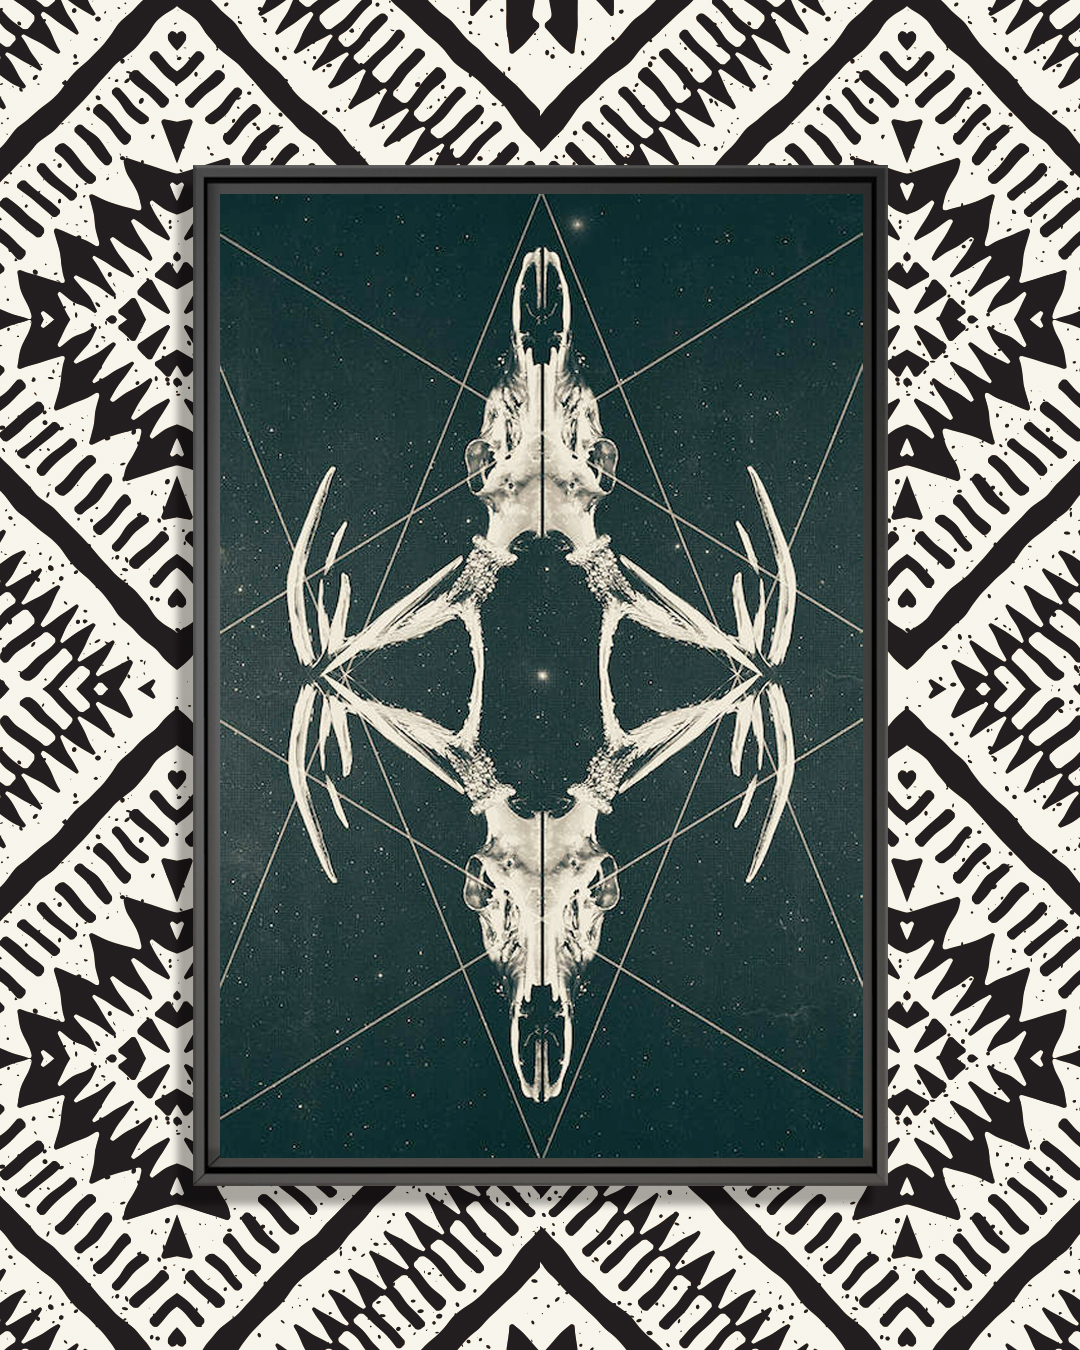 two deer skulls with geometric line shapes and stars in the background